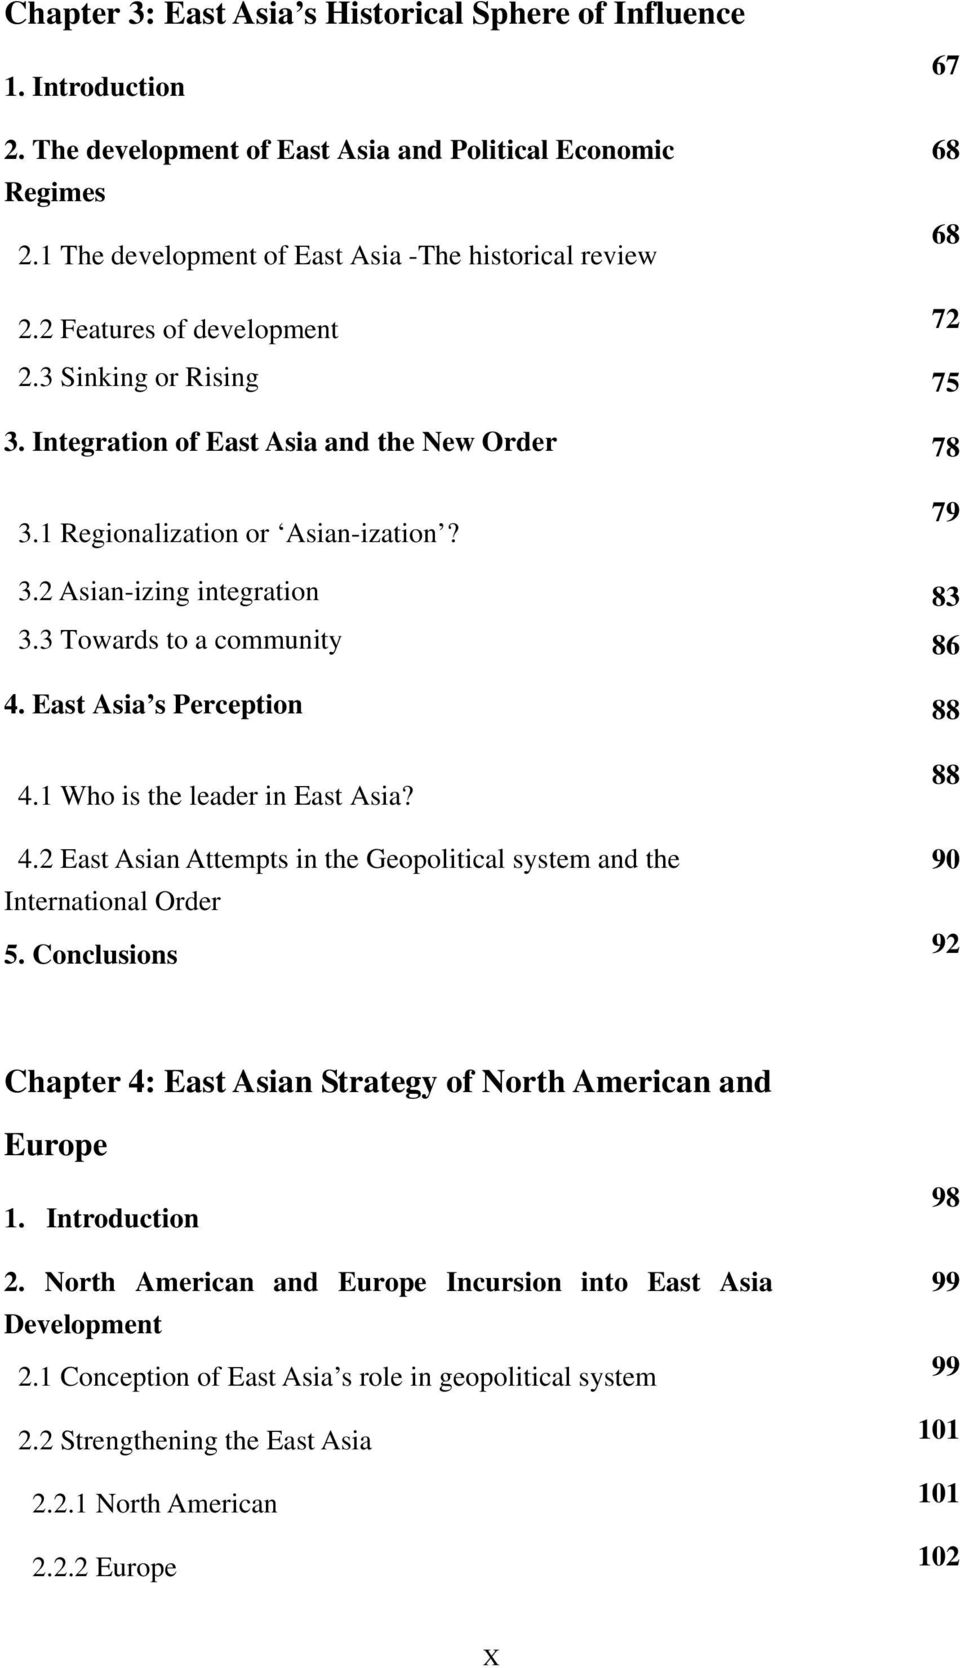 3 Towards to a community 86 4. East Asia s Perception 88 4.1 Who is the leader in East Asia? 88 4.2 East Asian Attempts in the Geopolitical system and the 90 International Order 5.